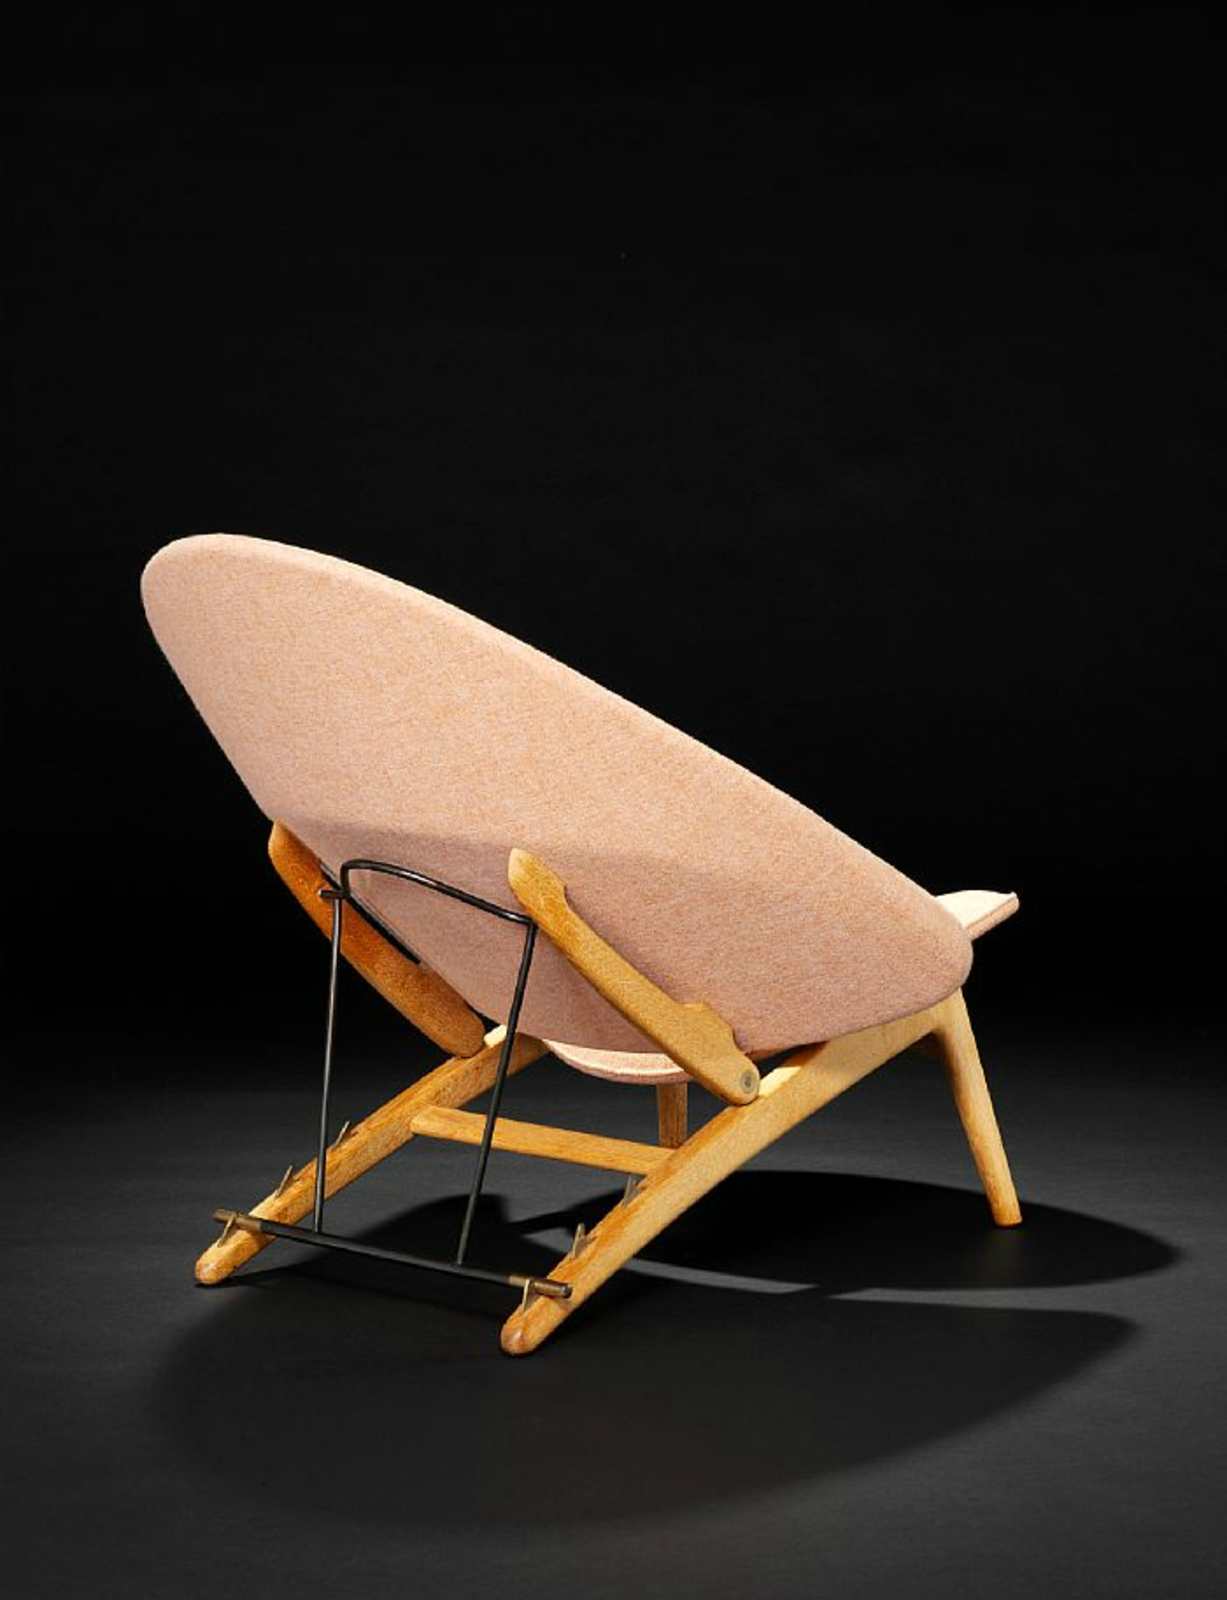 Photo 1 of 2 in PP Møbler Produces Rare Hans Wegner Prototypes - Dwell